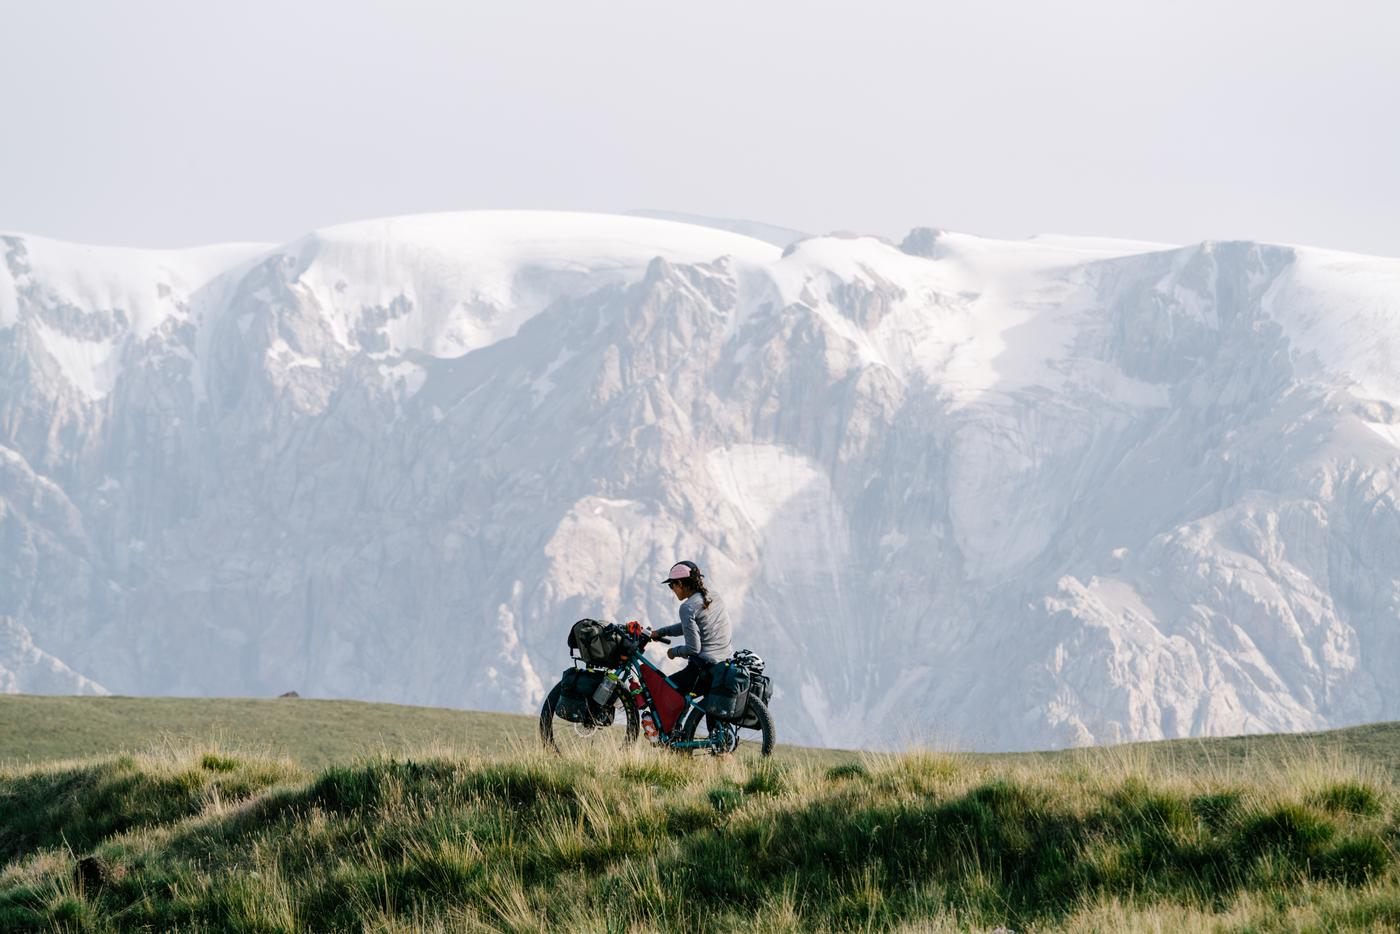 Only Bread to Baetov: Food Poisoning in the Tian Shan Mountains